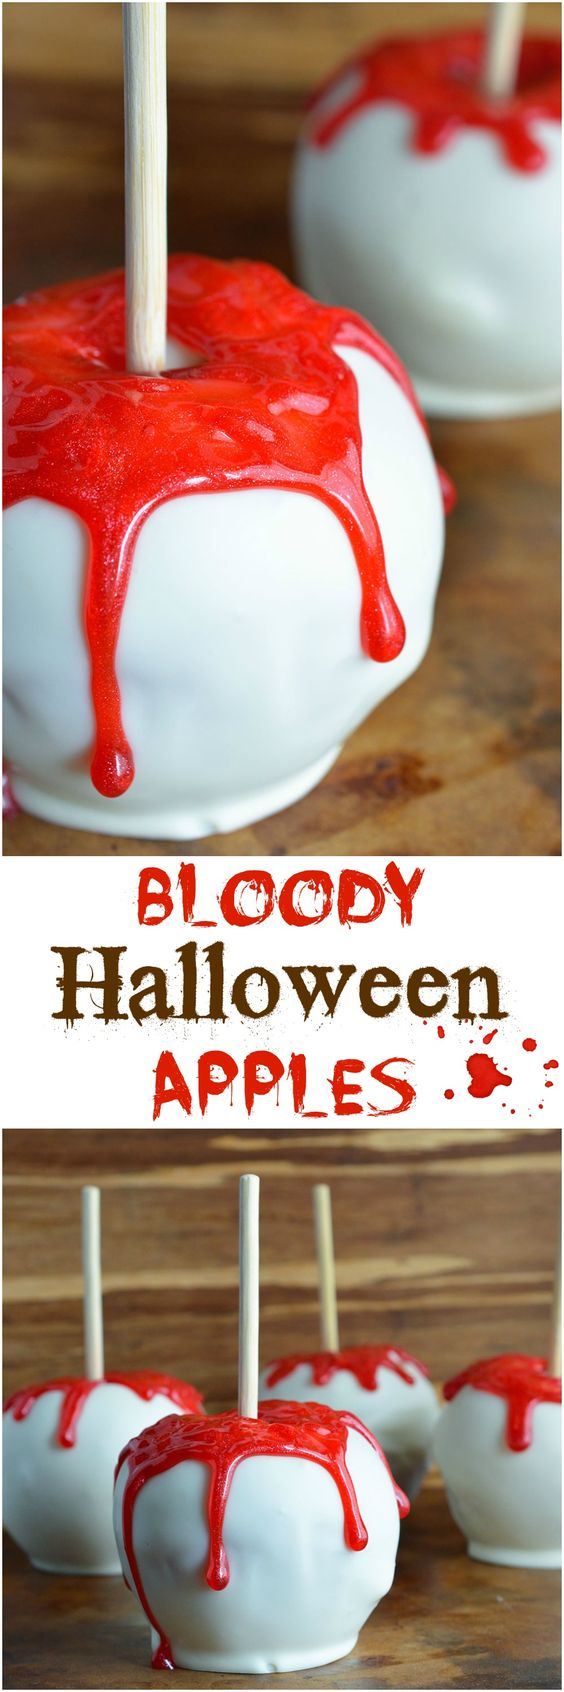 Halloween-Party-Treats-Appetizers-and-Desserts-Recipes-Bloody-White-Chocolate-Apples-Treats-Recipe-via-Wonky-Wonderful